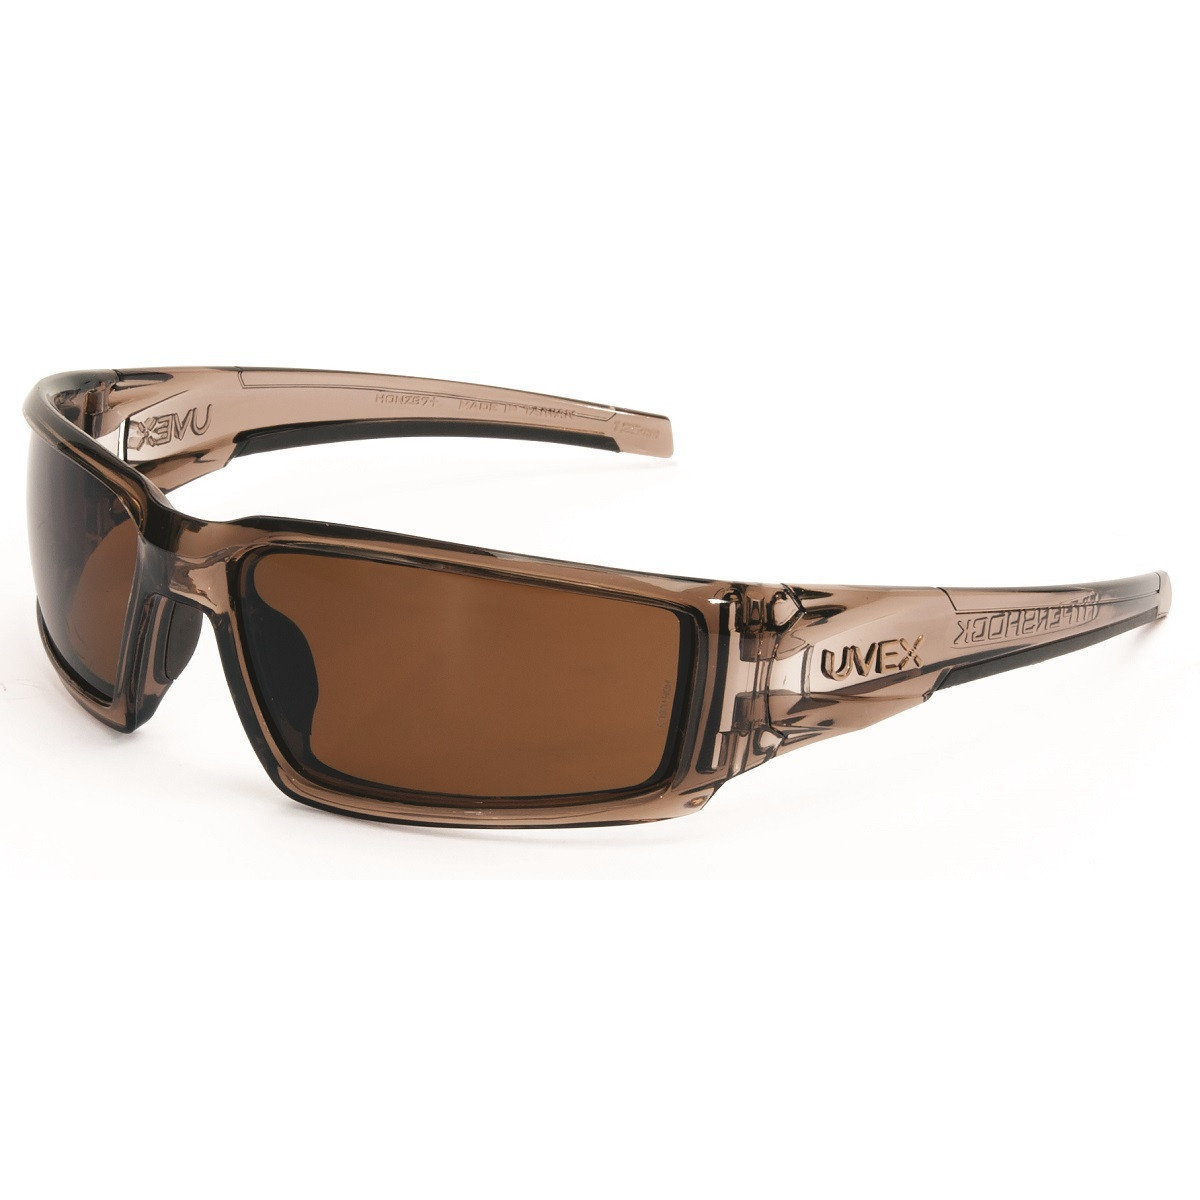 62d8f99b6f Uvex S2969 Hypershock Safety Glasses - Smoke Brown Frame - Espresso Polarized  Lens